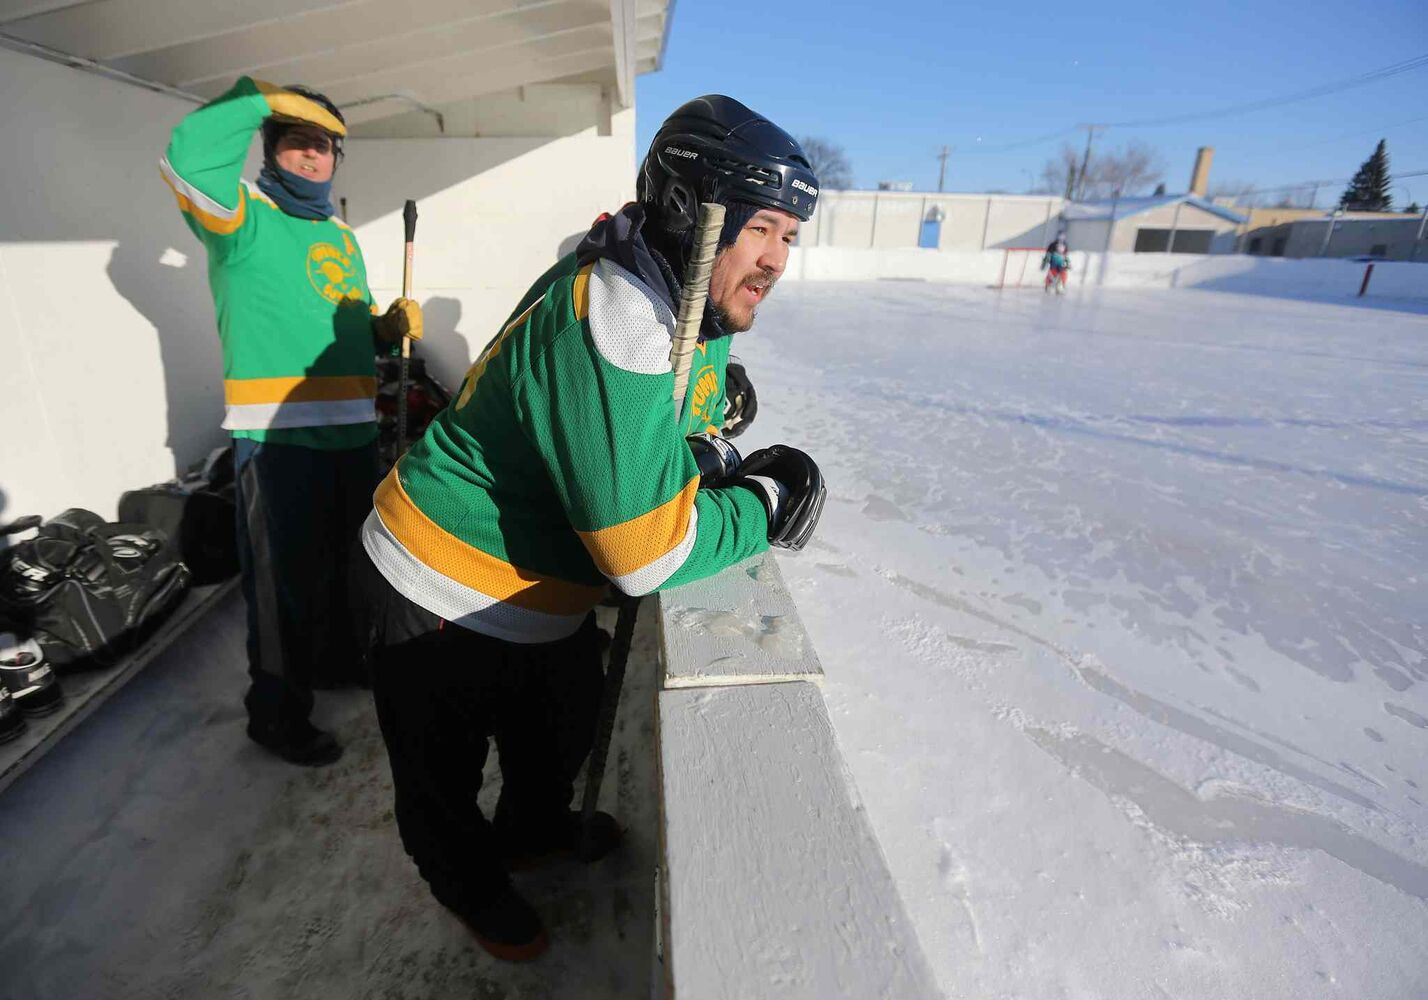 Tom McMahon, left, and Dewey Ackegan watch from the bench as their teammates battle it out against the Mighty Puckin' Drunks. (Trevor Hagan / Winnipeg Free Press)